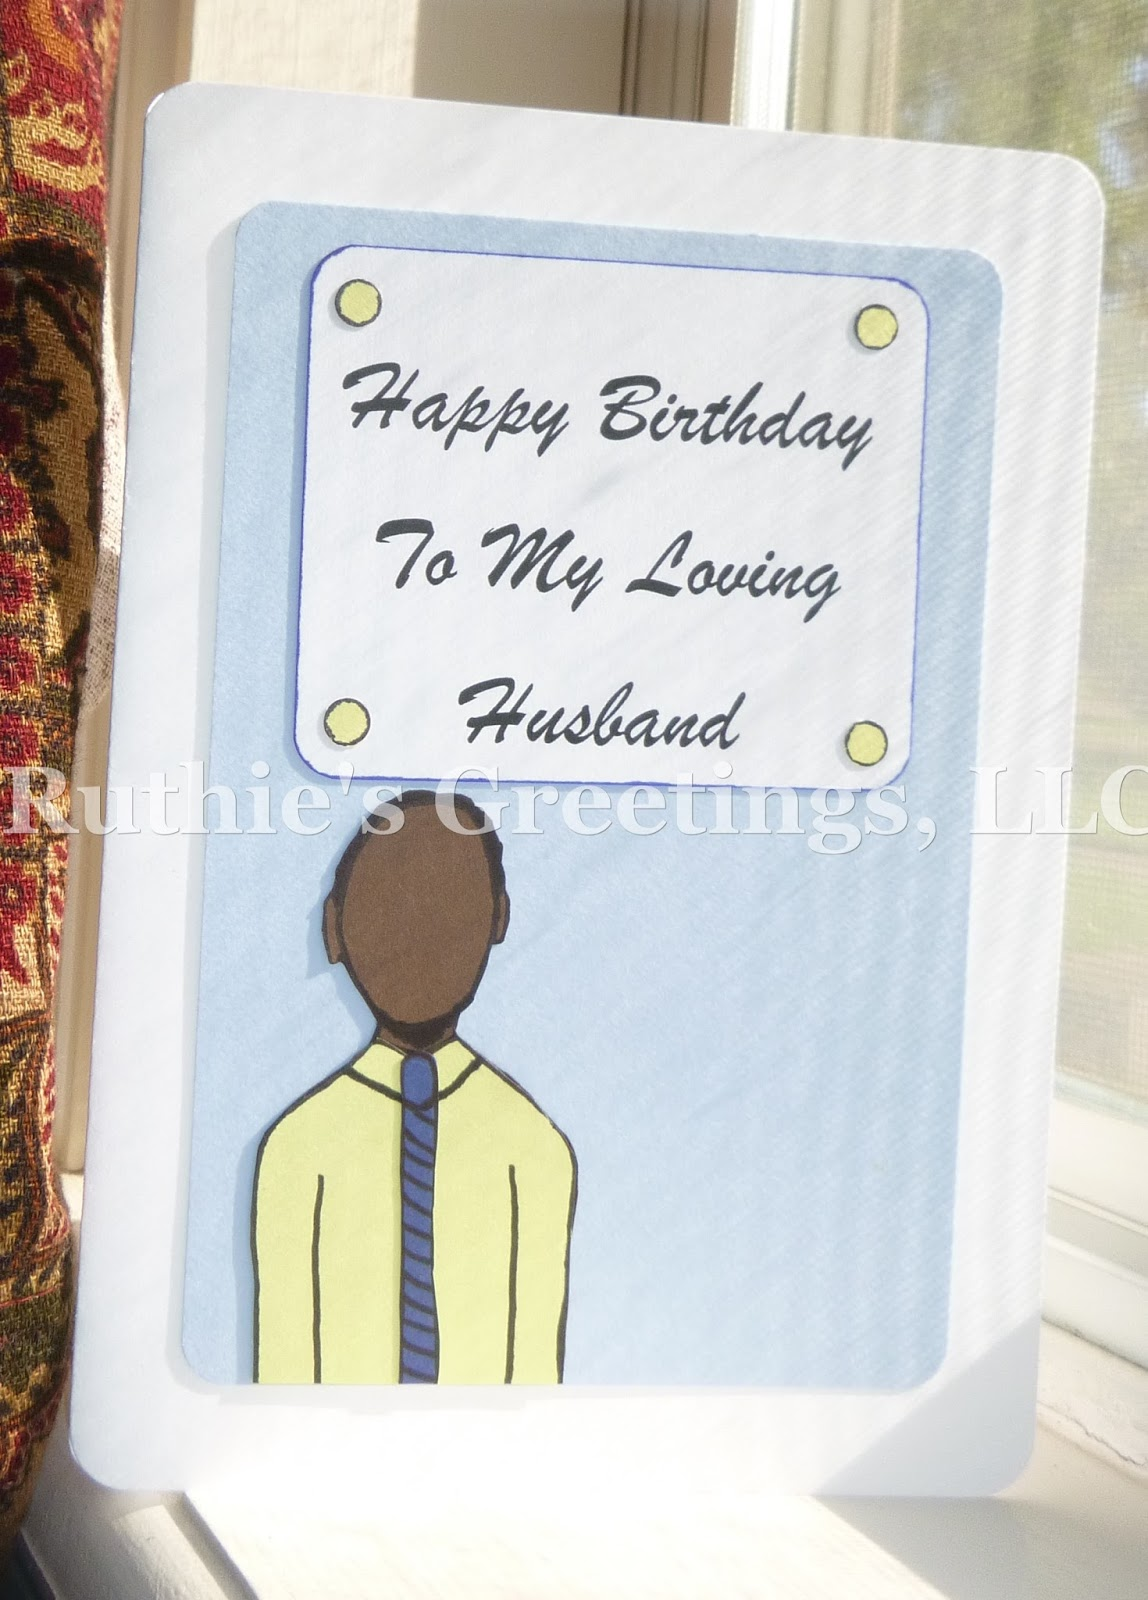 New african american husband birthday cards happy birthday husband card available on etsy kristyandbryce Images